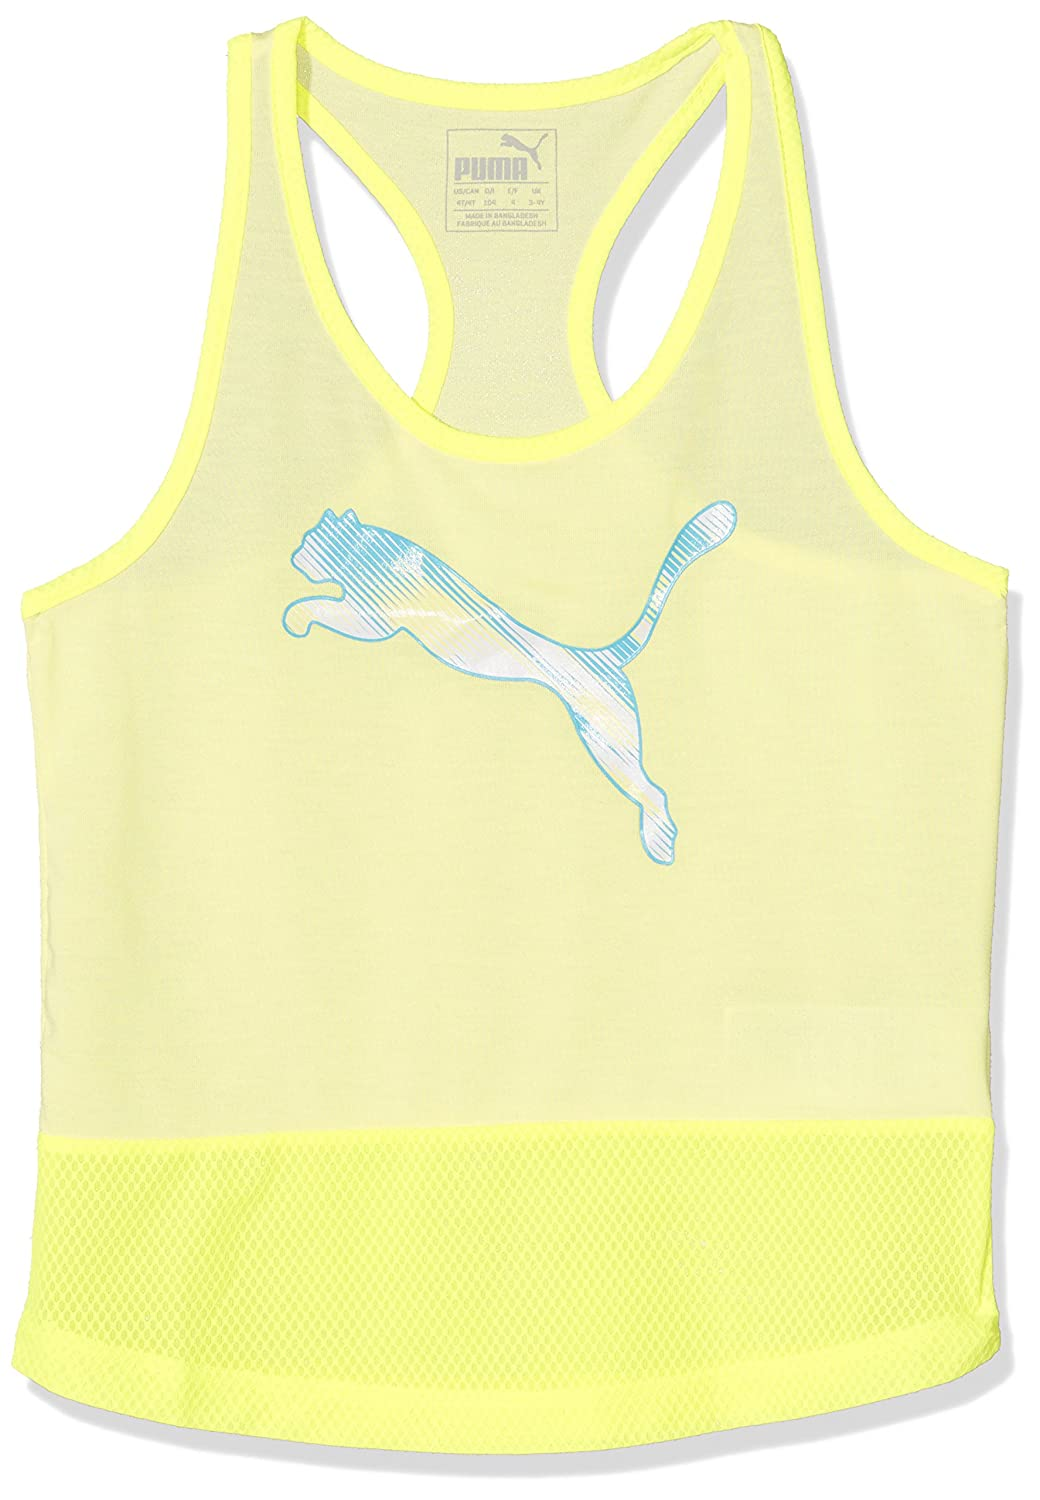 Puma Bambini Soft Sport Layer Canotta, Bambini, Softsport Layer Tank, Soft Fluo Yellow, 176 PUMAE|#PUMA 590826